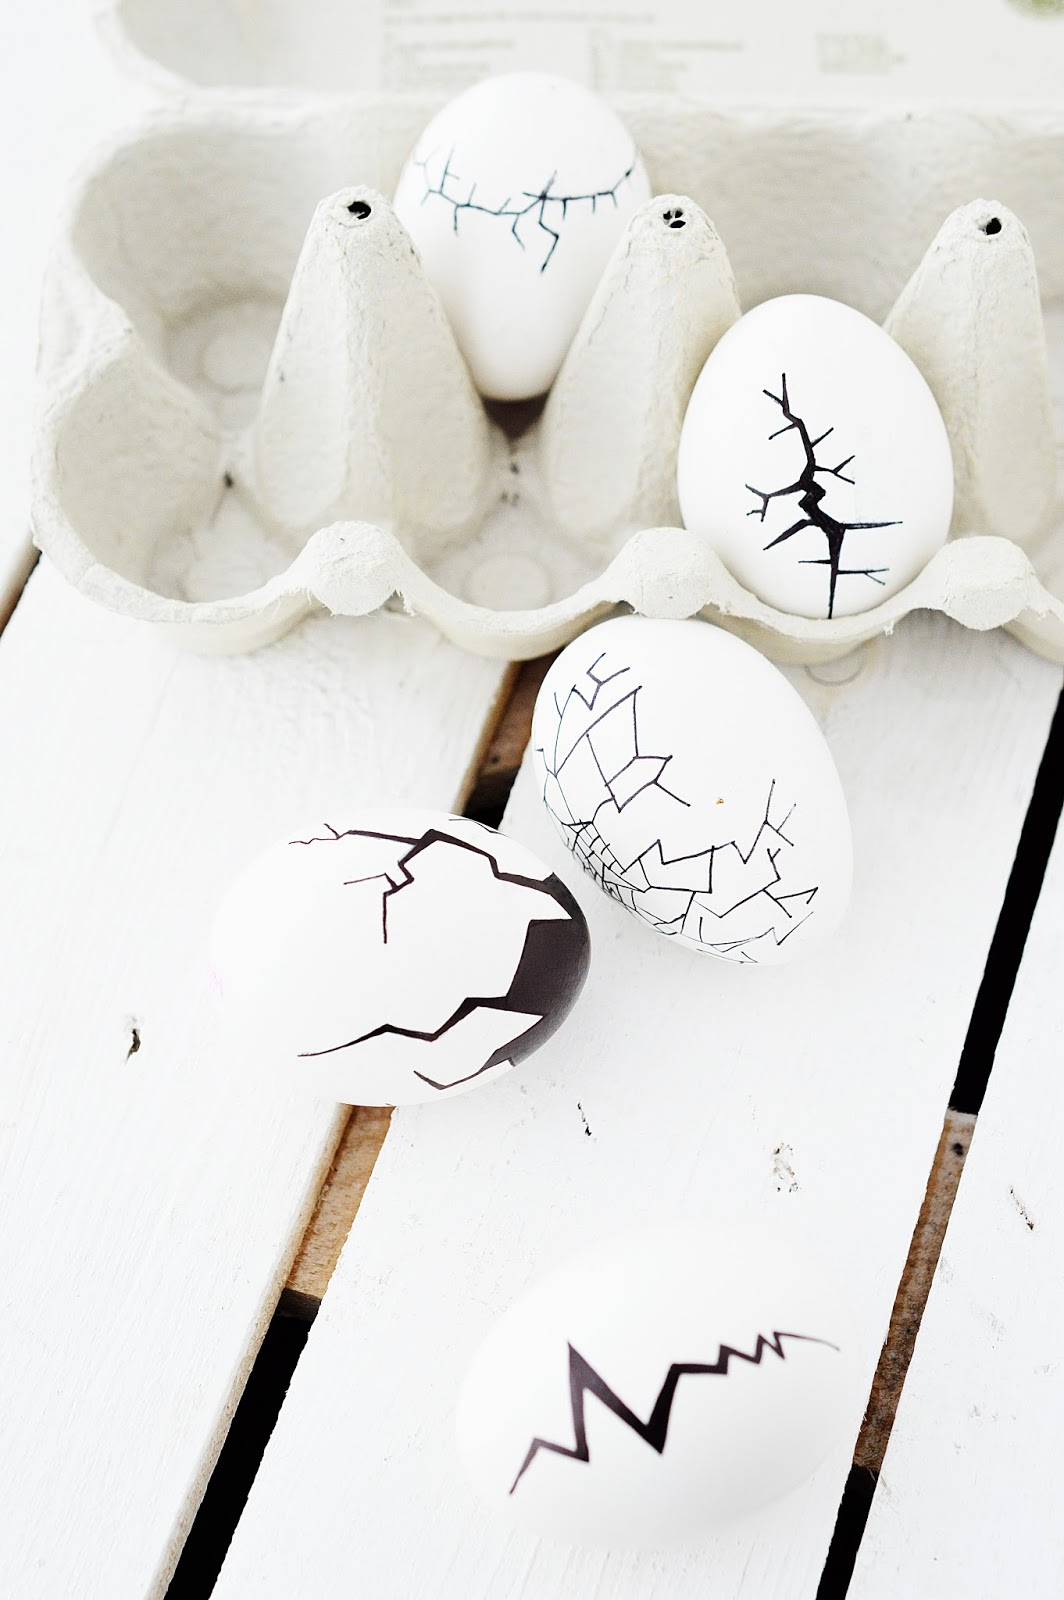 Easter eggs painted with cracks using a marker